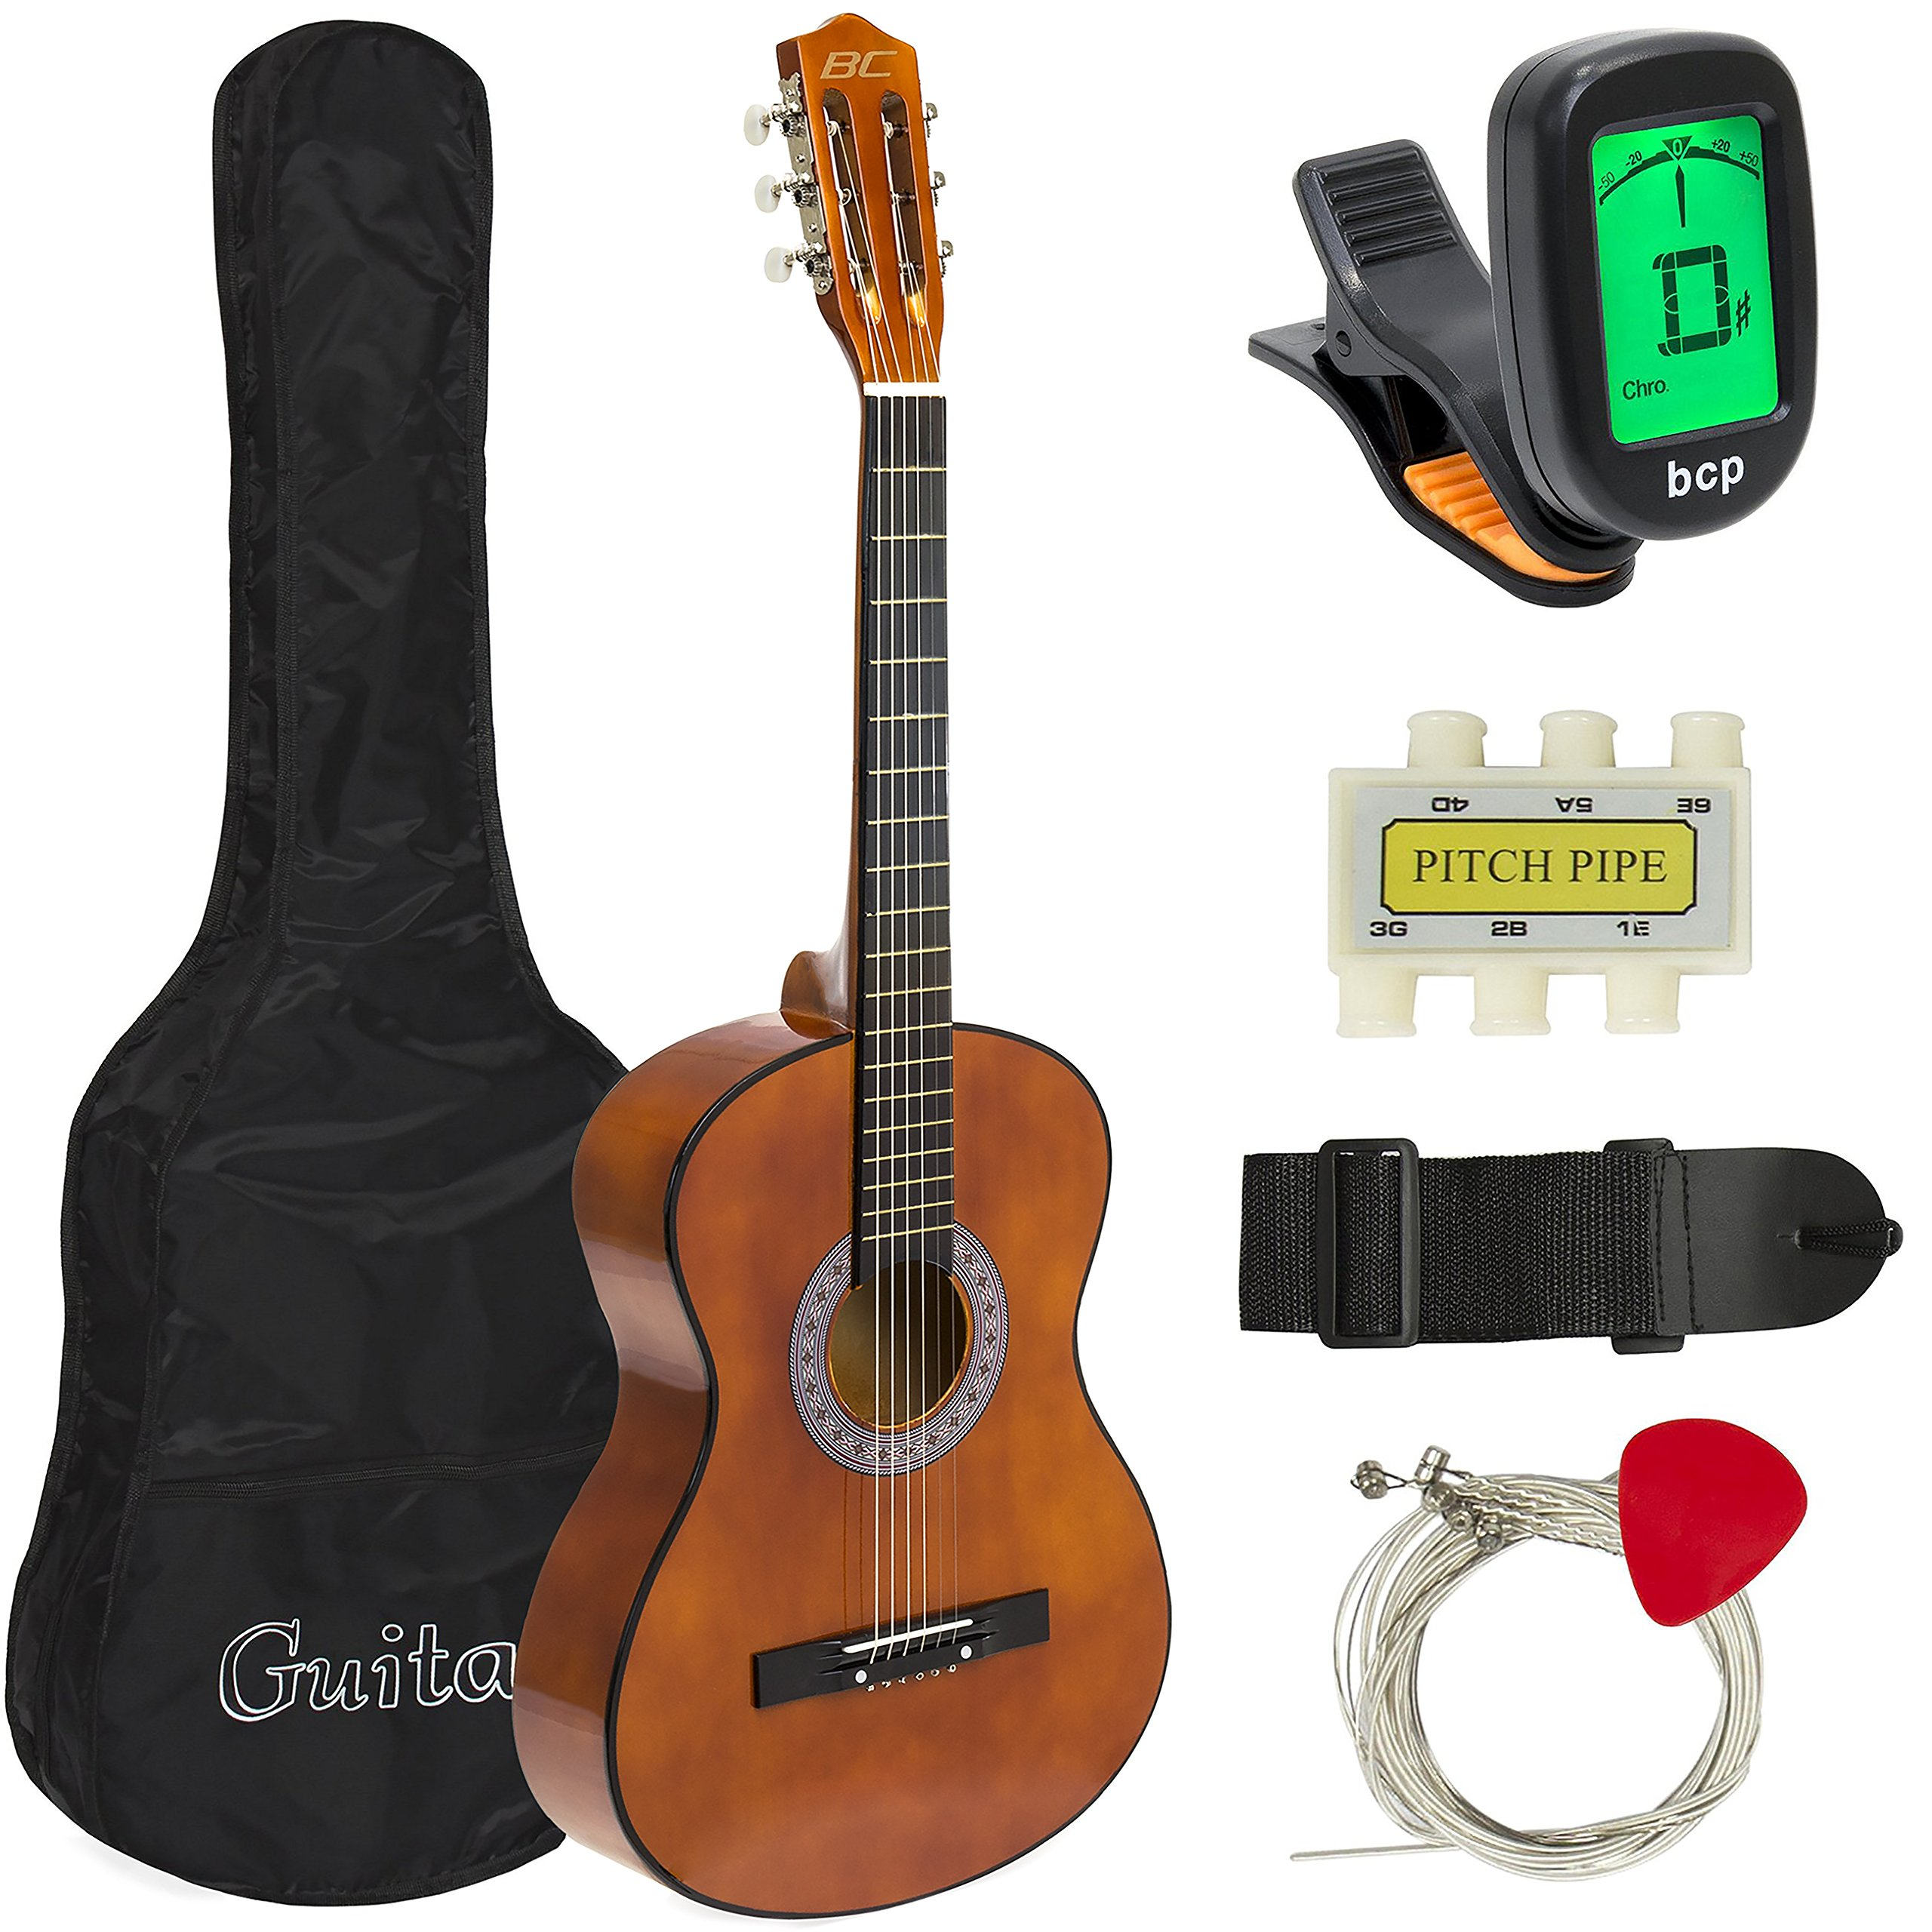 Best Choice Products 38in Beginner Acoustic Guitar Starter Kit w/ Case, Strap, Digital E-Tuner, Pick, Pitch Pipe, Strings - Brown by Best Choice Products